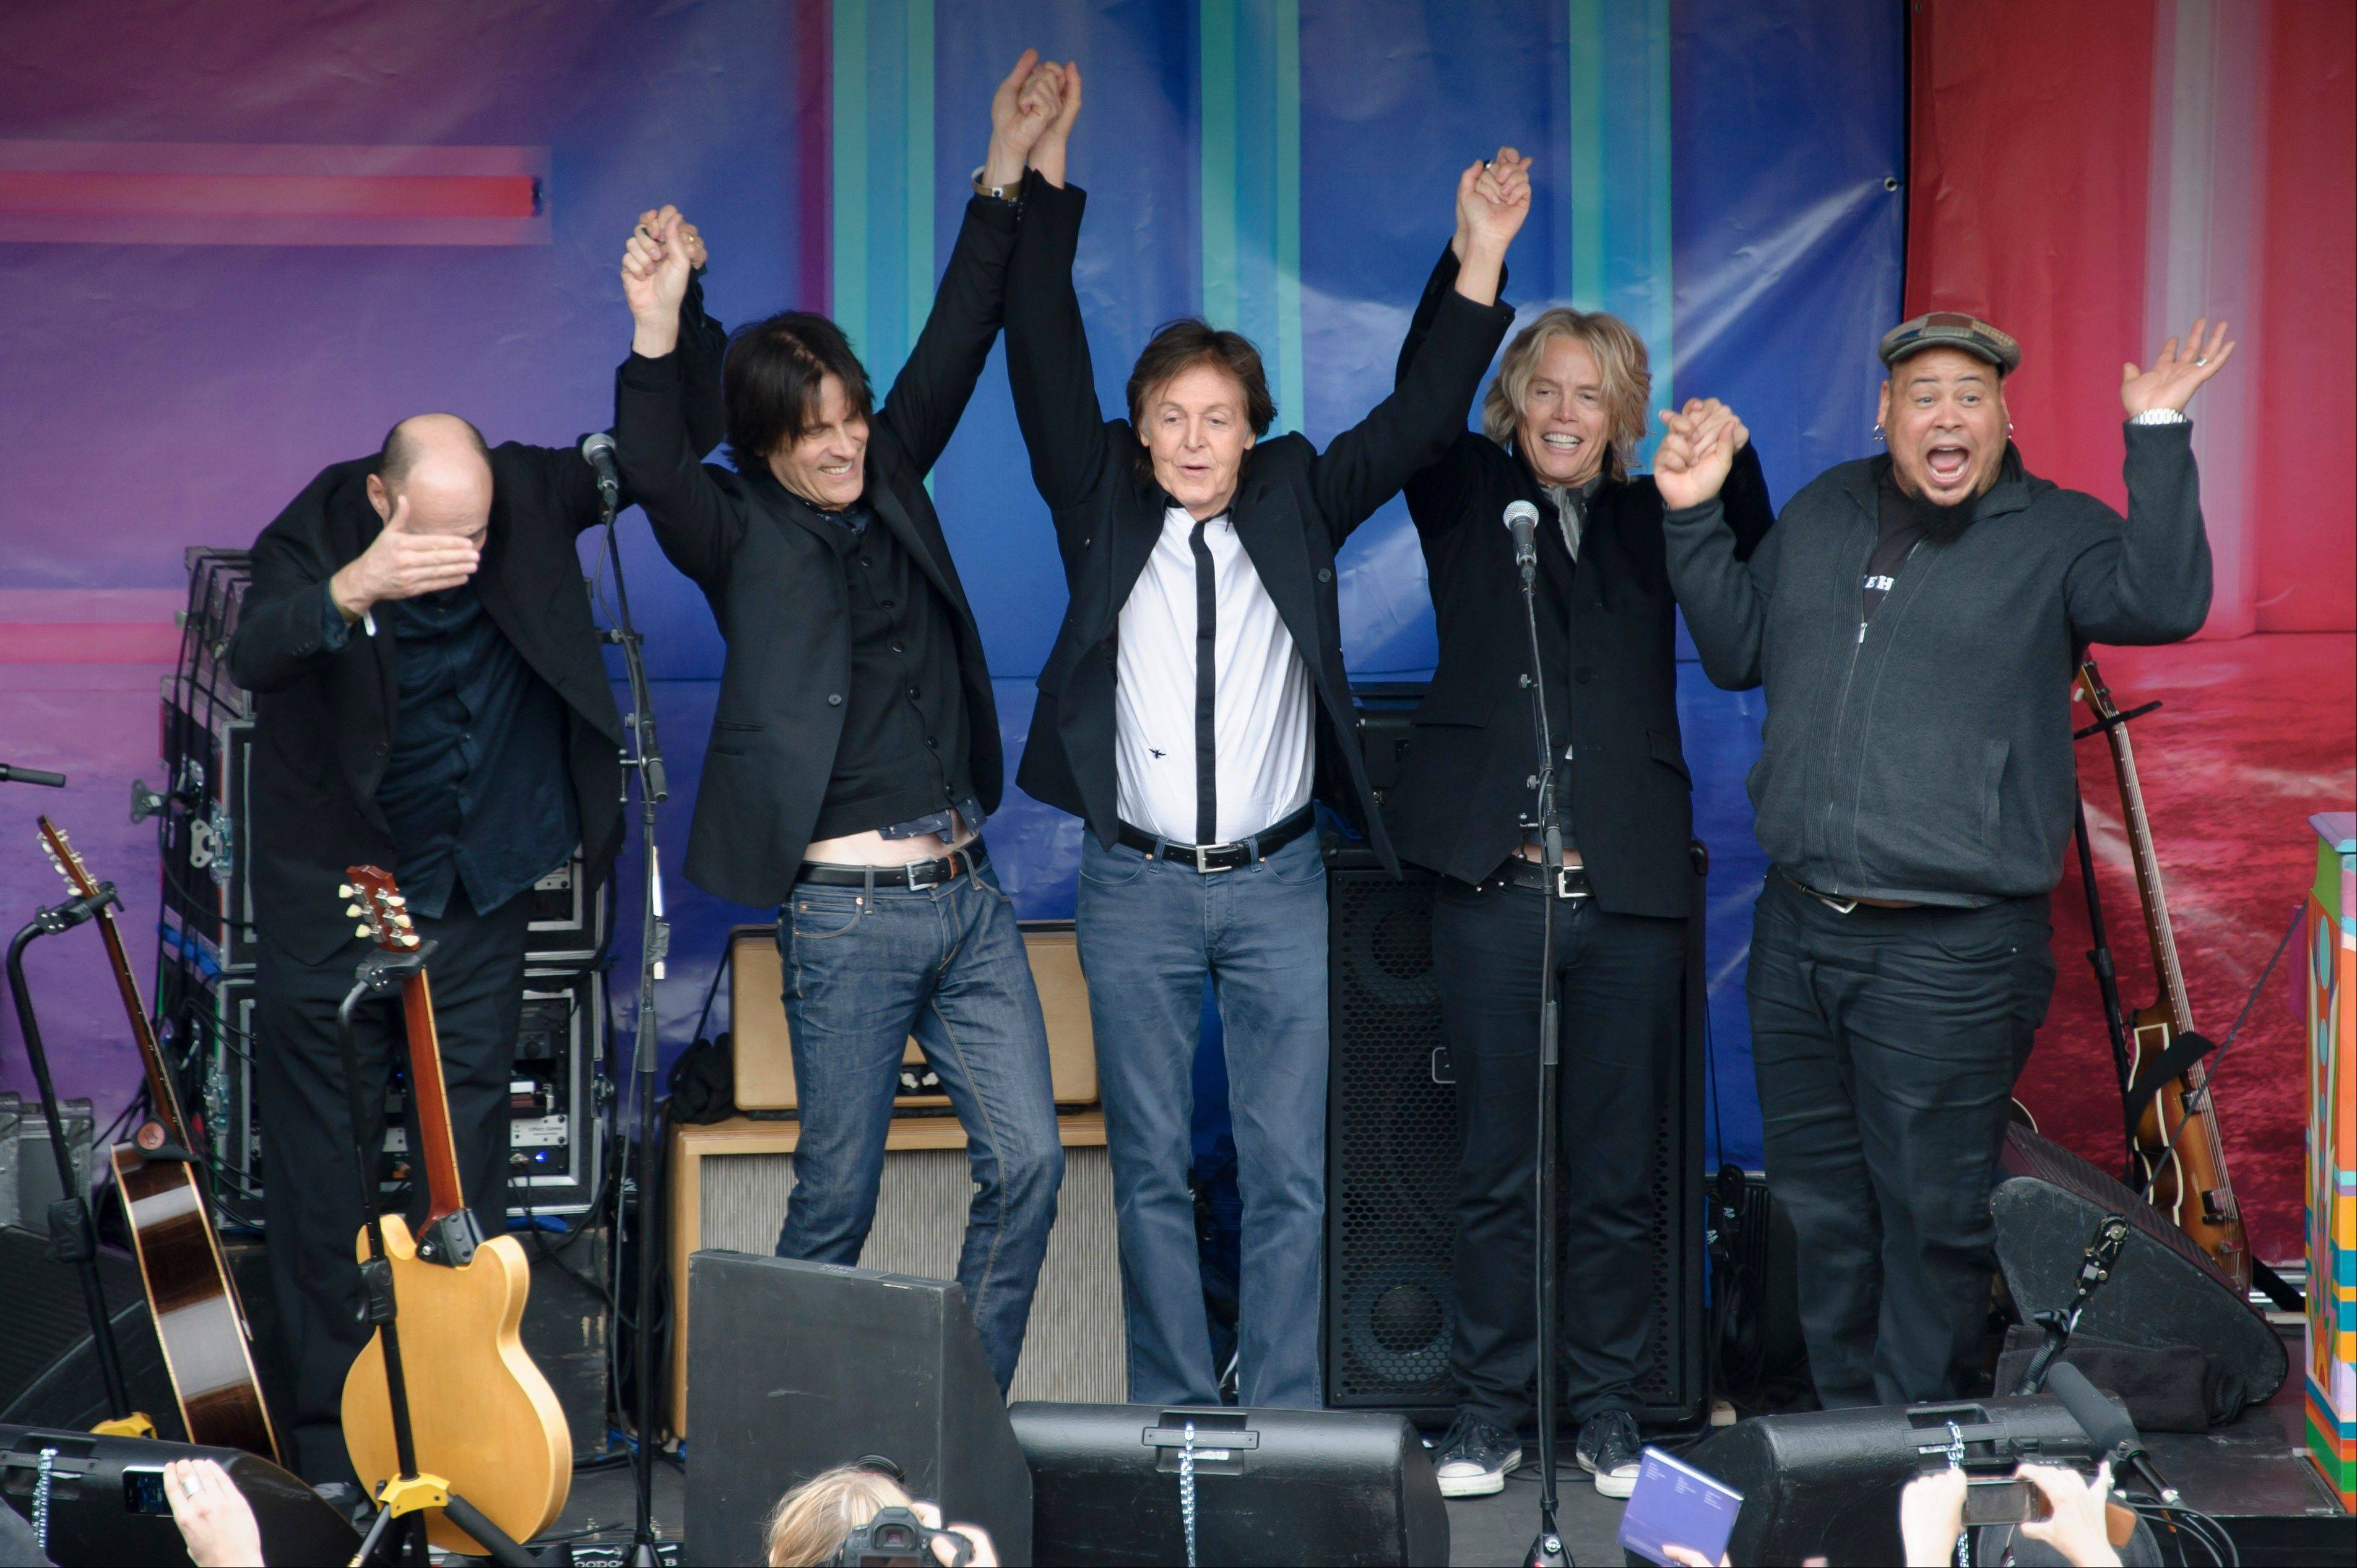 British singer Sir Paul McCartney and his band acknowledge the crowd after performing in Covent Garden, London, Friday. The surprise gig lasted for 20 minutes during lunchtime following a similar appearance in New York last Friday.